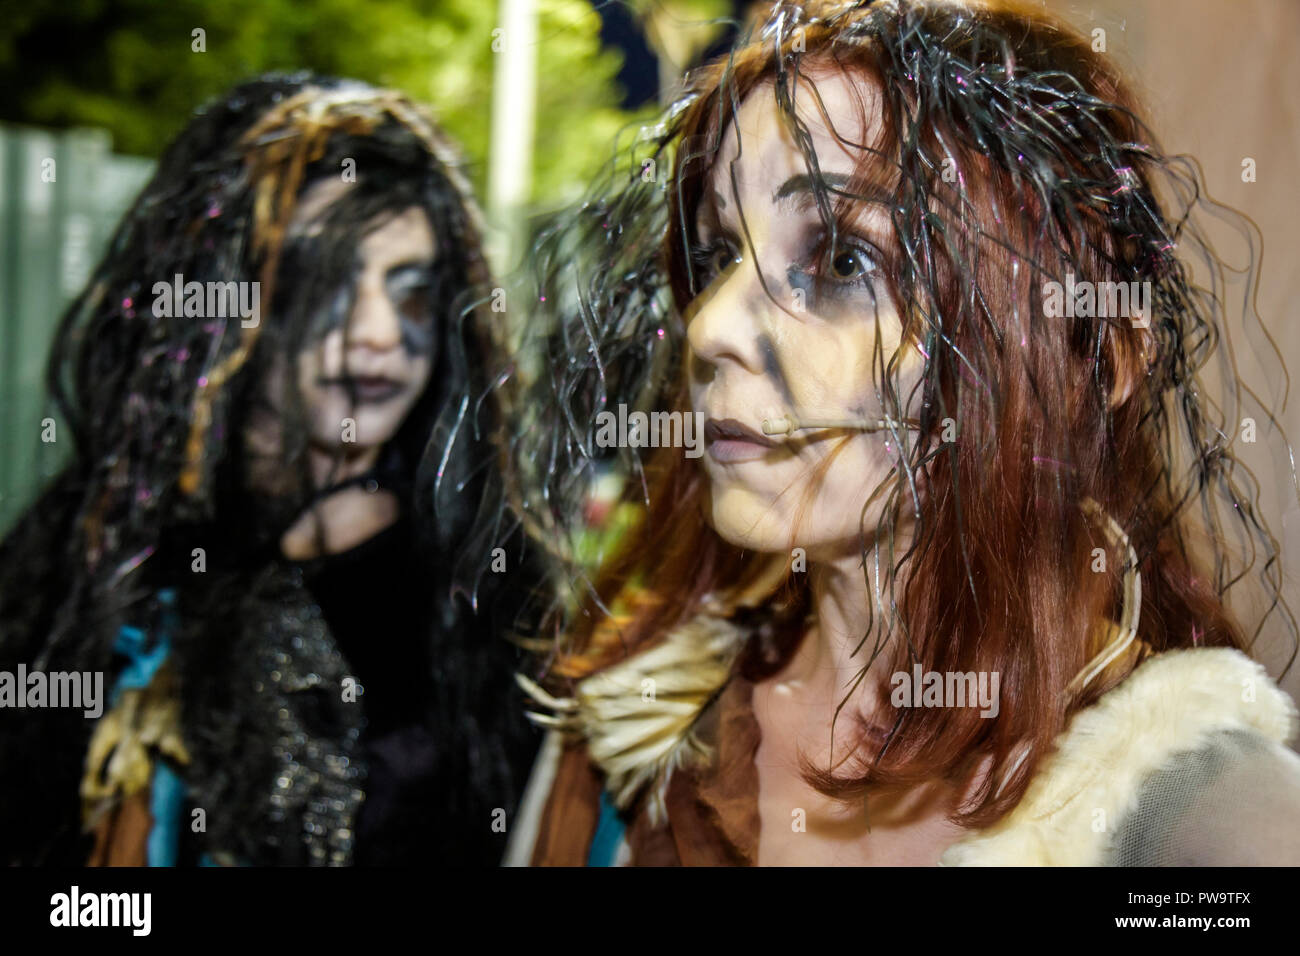 Miami Beach Florida Flamingo Park Arts in the Park Shakespeare Macbeth actor acting role play theater woman women theatrical mak - Stock Image